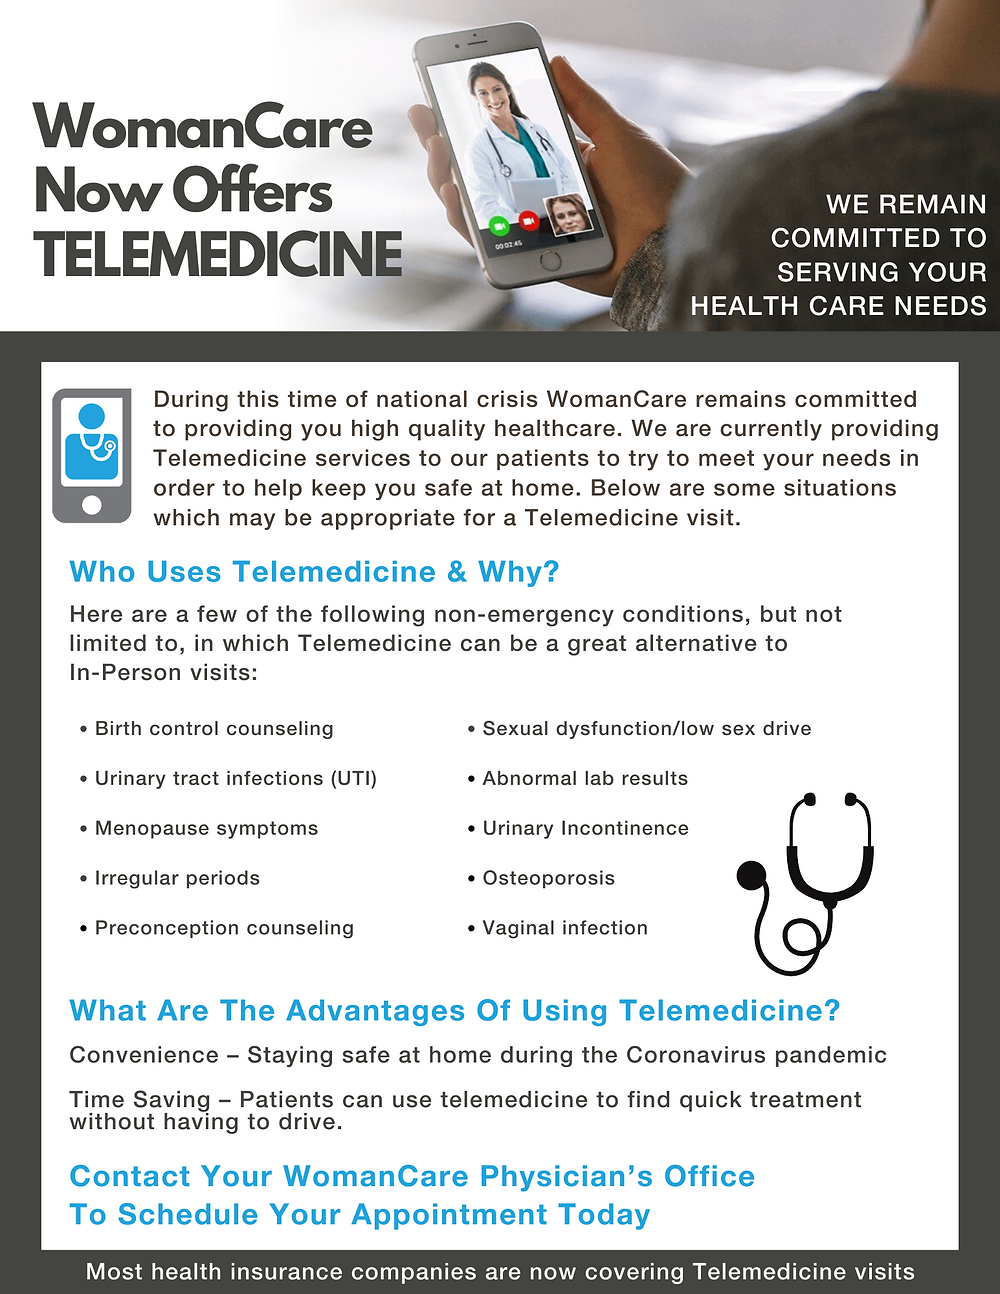 Telemedicine at WomanCare